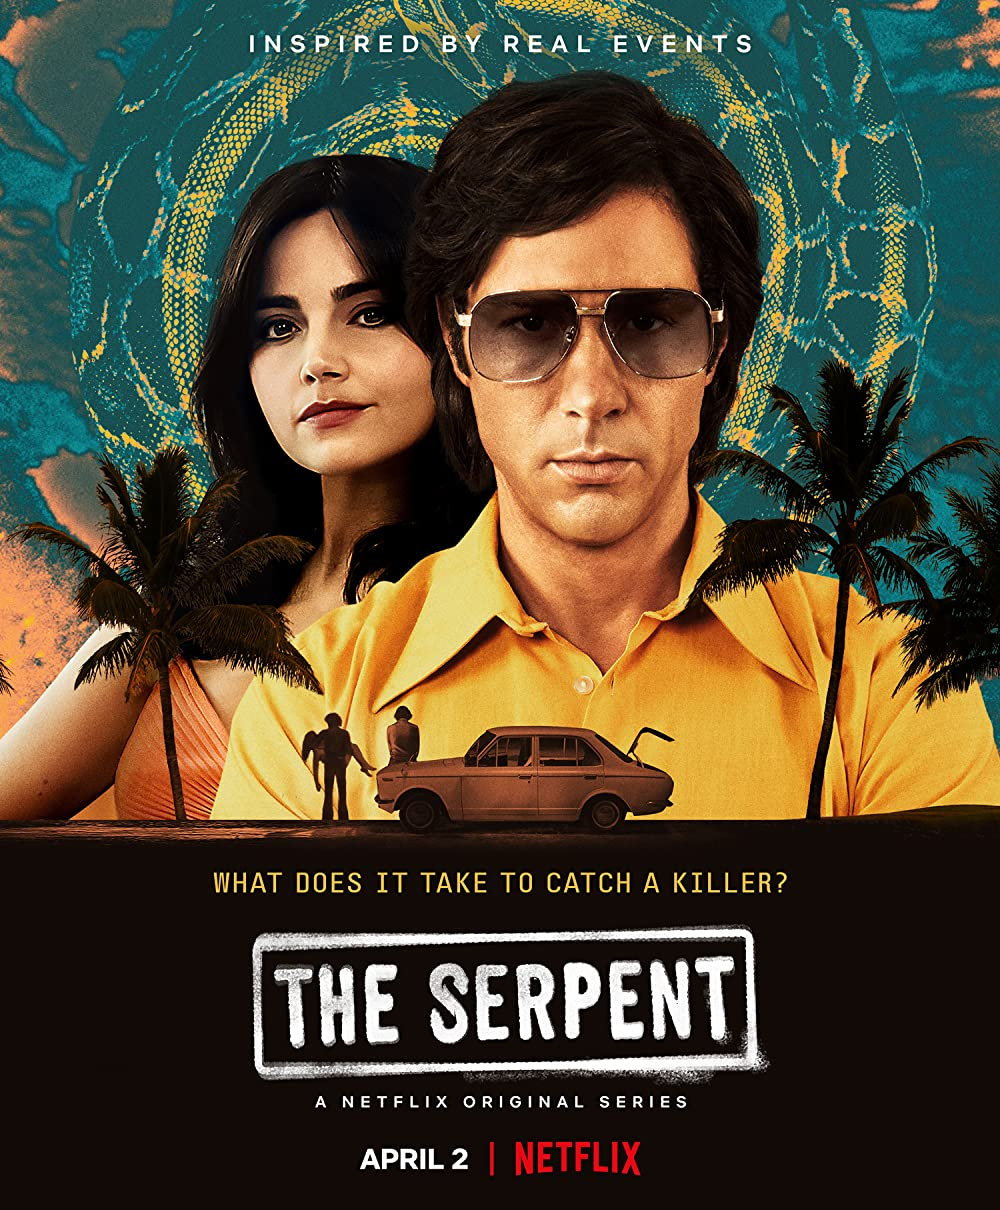 The Serpent (2021) S01 Complete Hindi Dubbed NF Series 480p HDRip 1.4GB Download